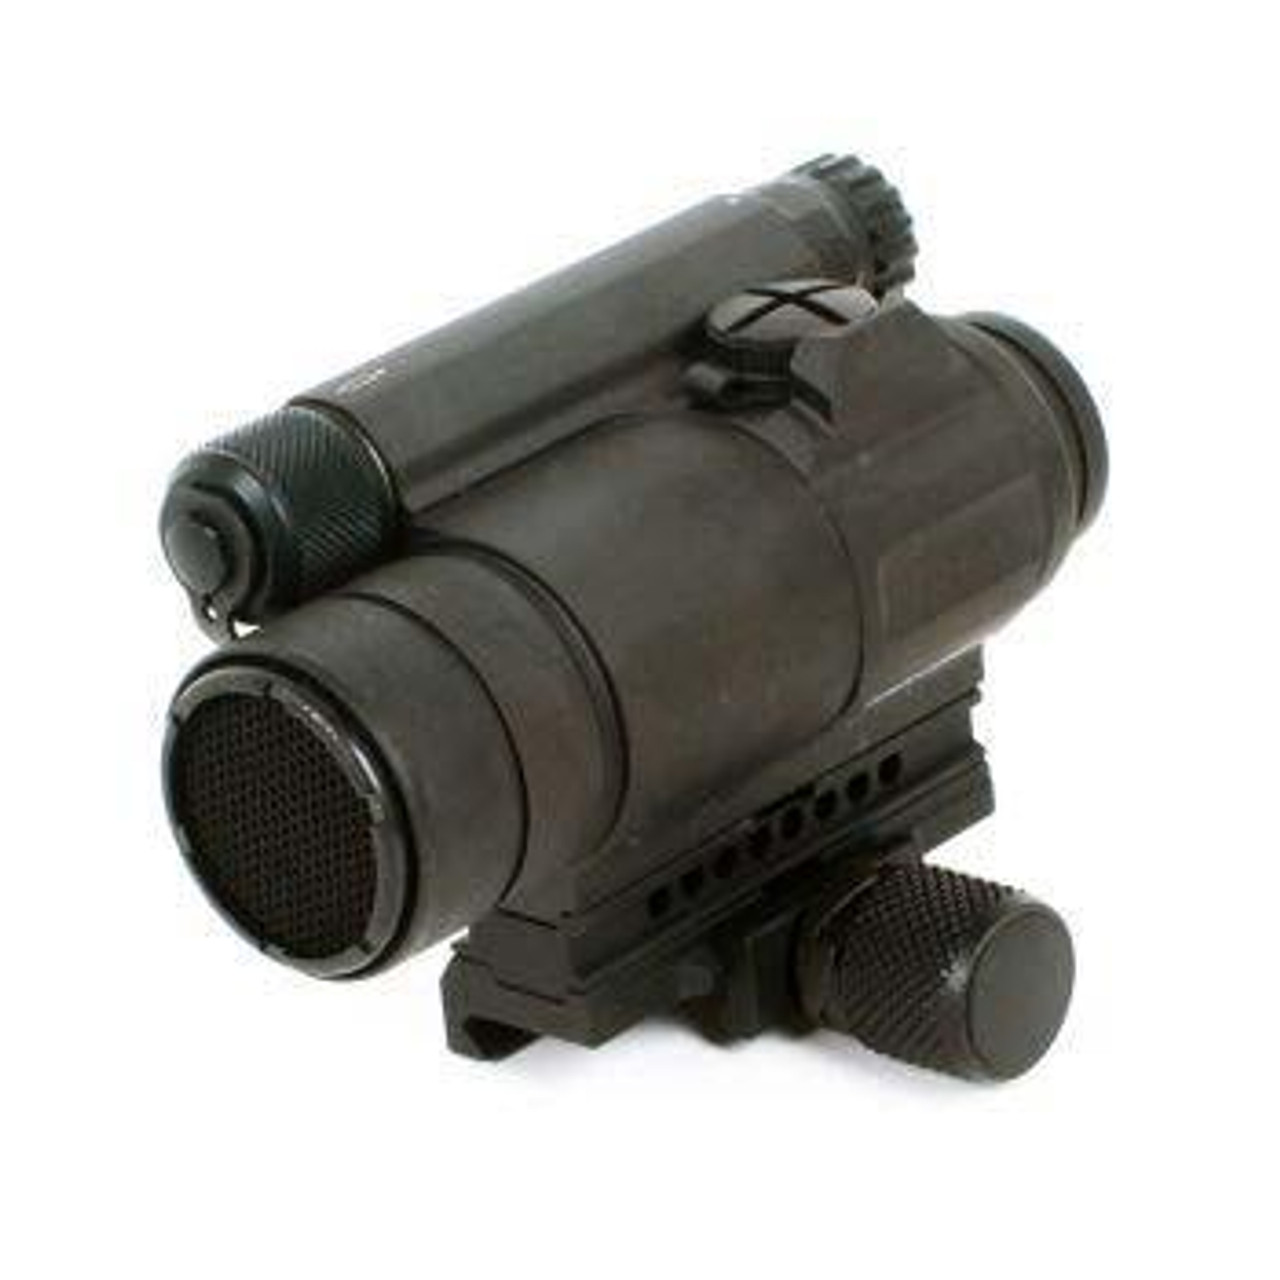 Aimpoint CompM4h, 2MOA Red Dot Sight, with QRP2 mount and AR15 spacer